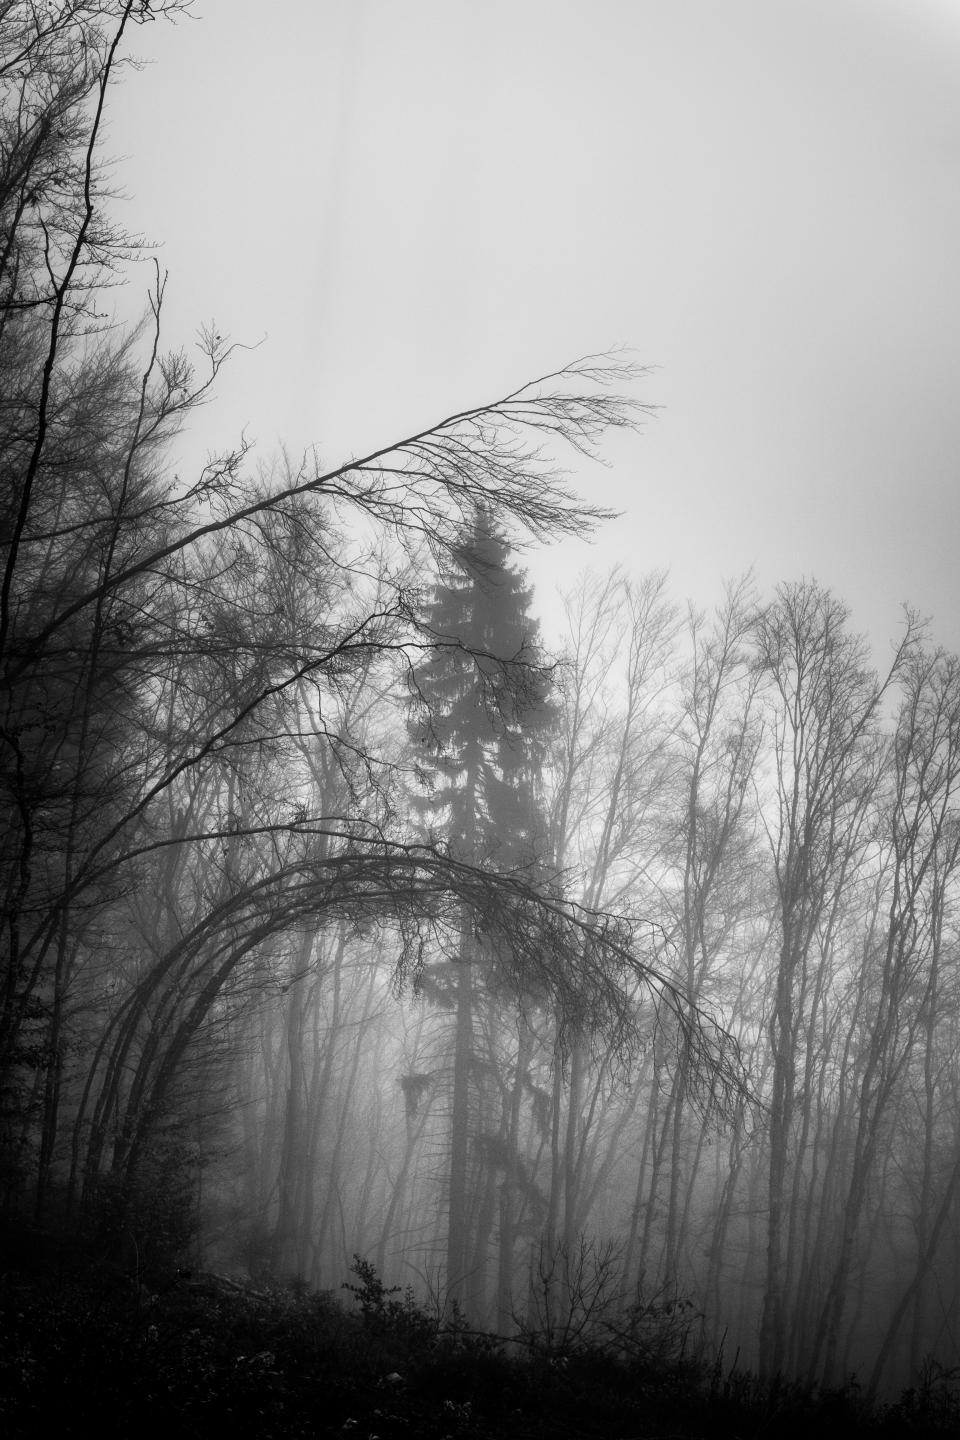 black and white, trees, plant, forest, nature, raining, storm, sky